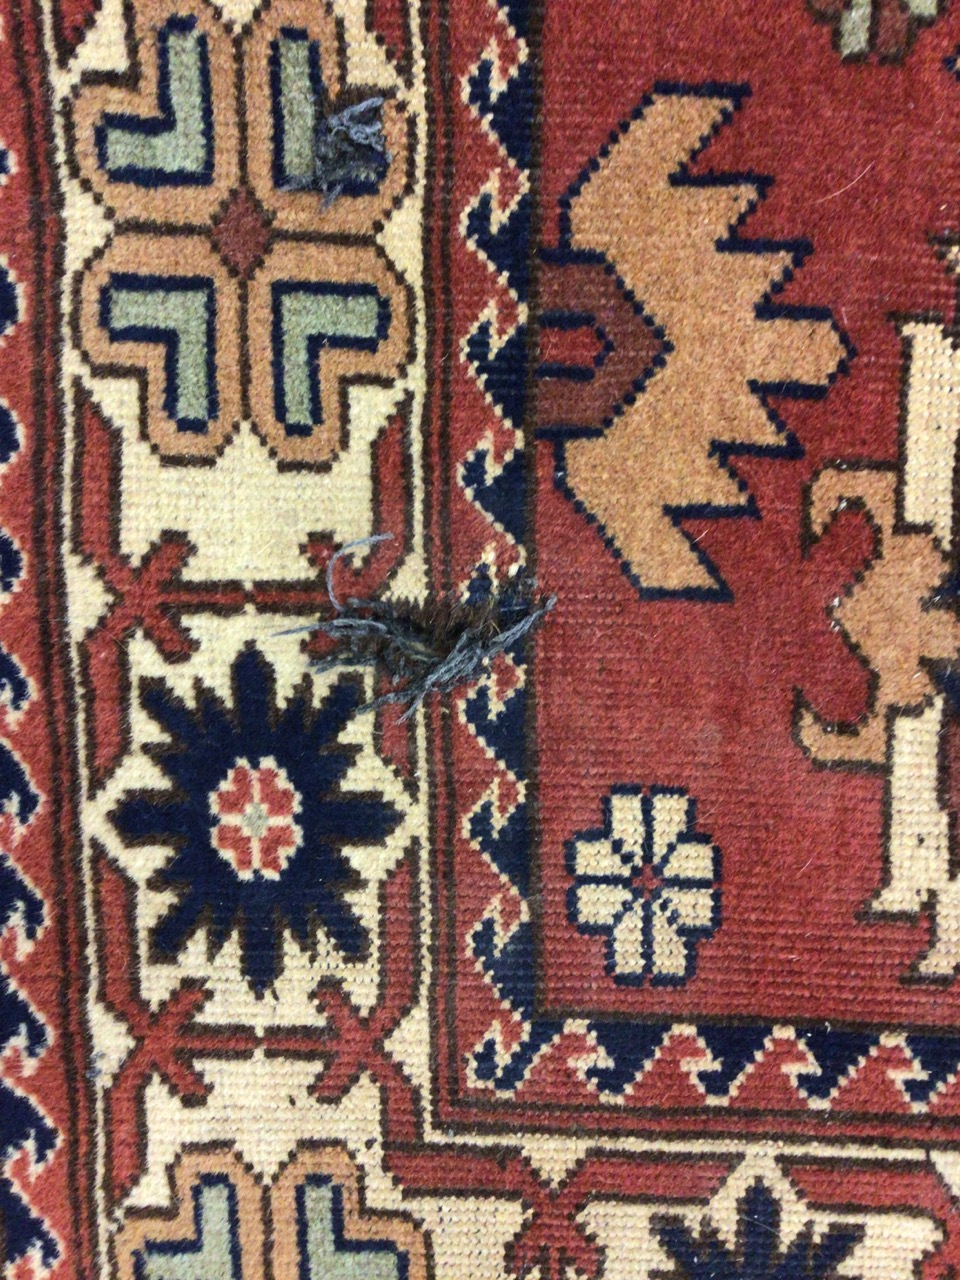 A Persian Hamadan rug with terracotta ground surrounded by a large cream border. W:173cm x H:120cm - Image 4 of 4